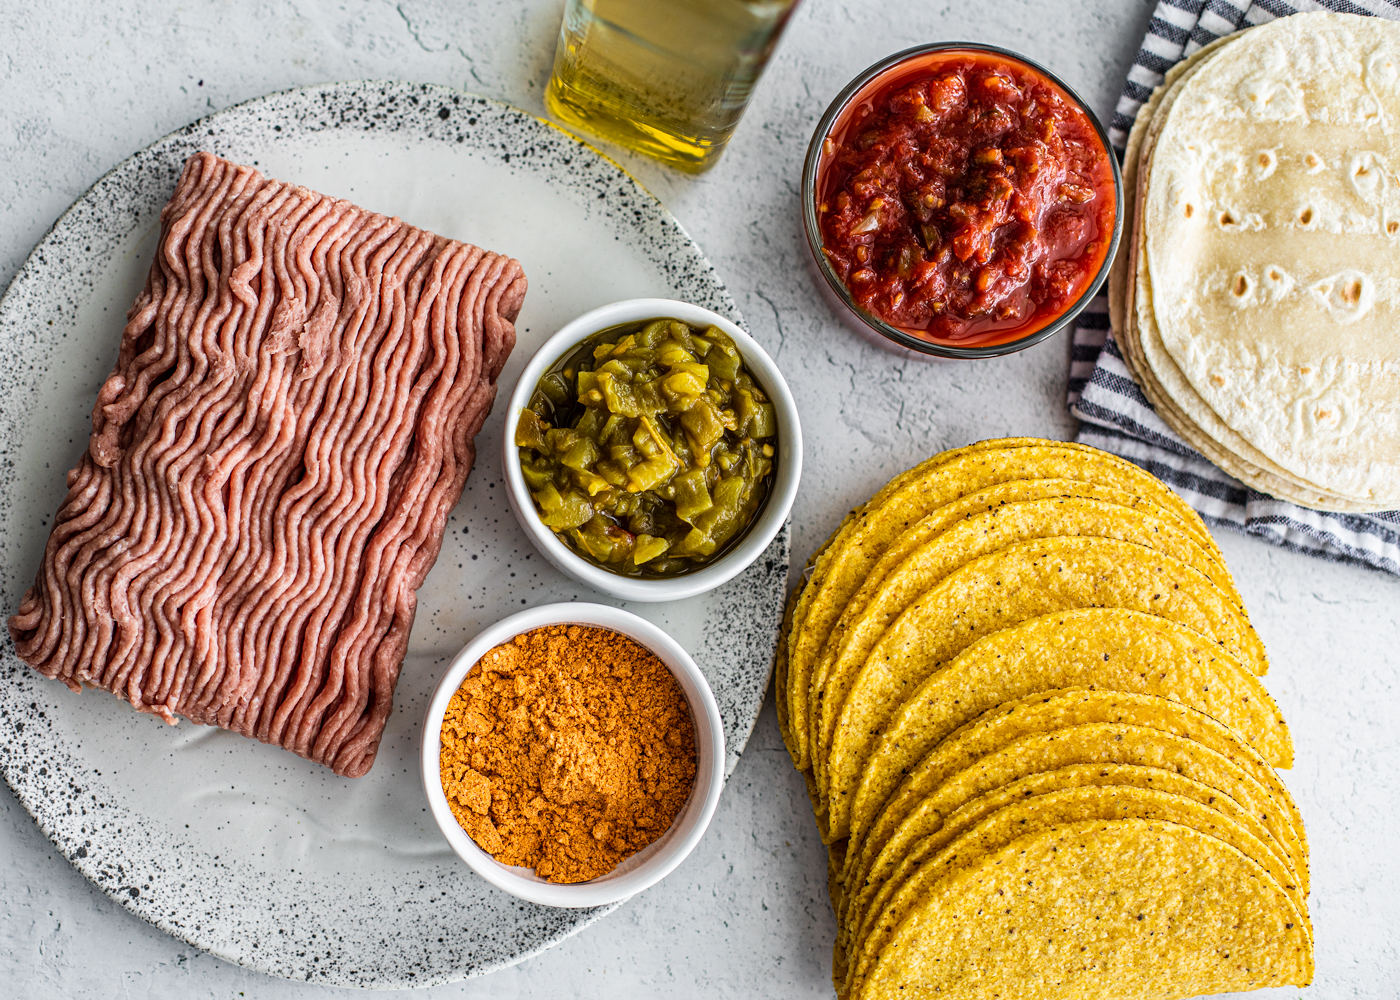 Ground turkey on a plate next to a pinch bowl of spices, canned chiles, salsa, hard shells and soft shells.